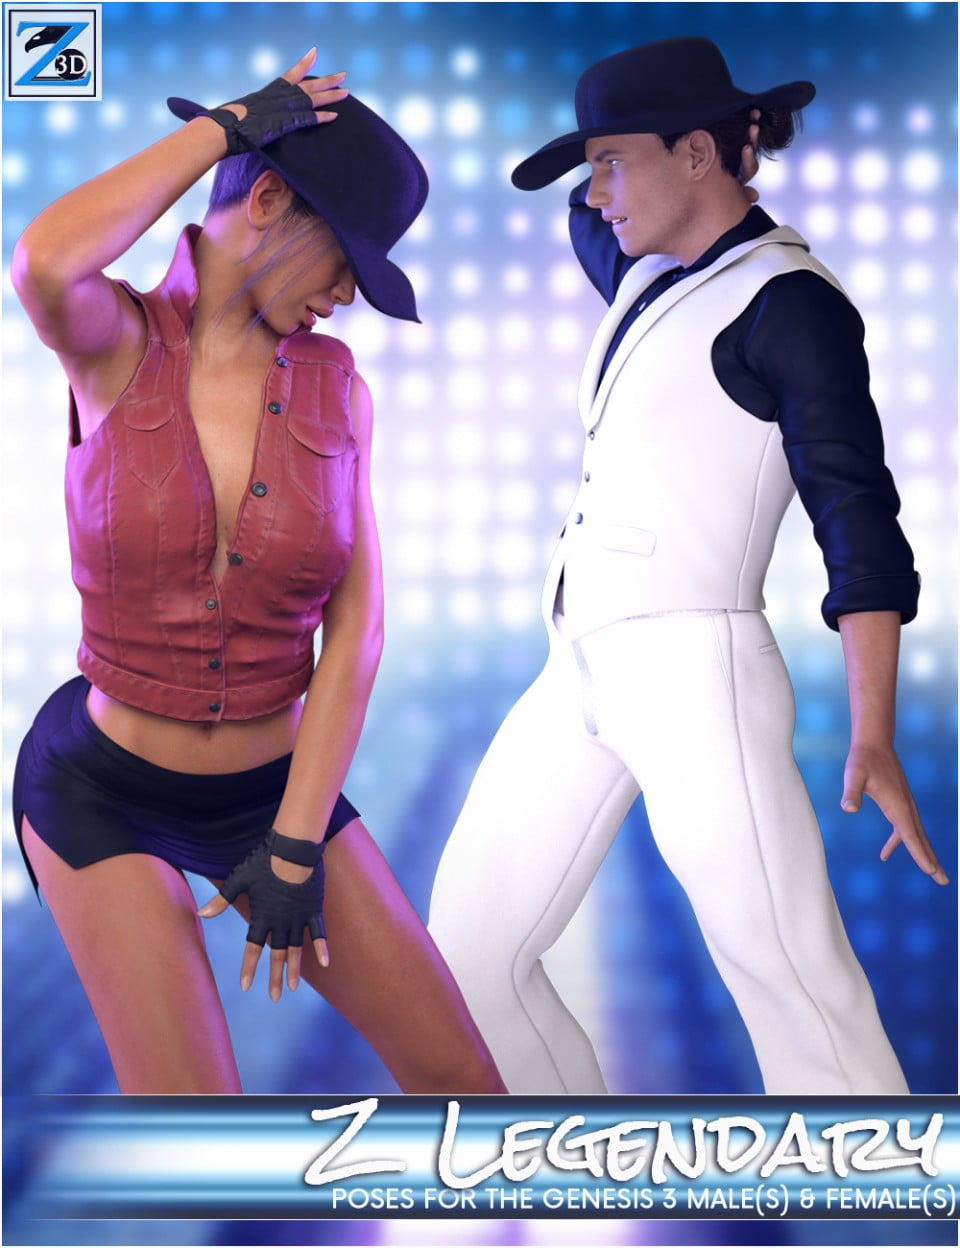 00-main-z-legendary-poses-for-the-genesis-3-males-females-daz3d